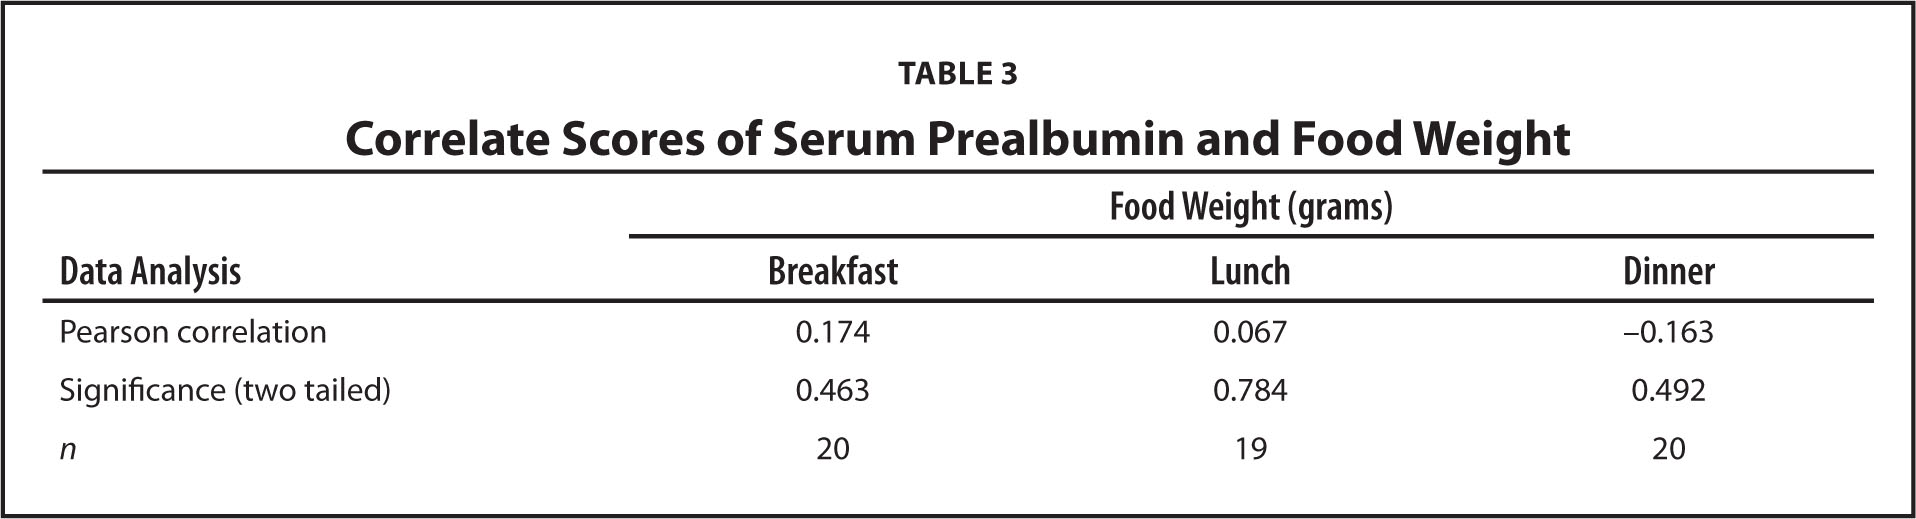 Correlate Scores of Serum Prealbumin and Food Weight